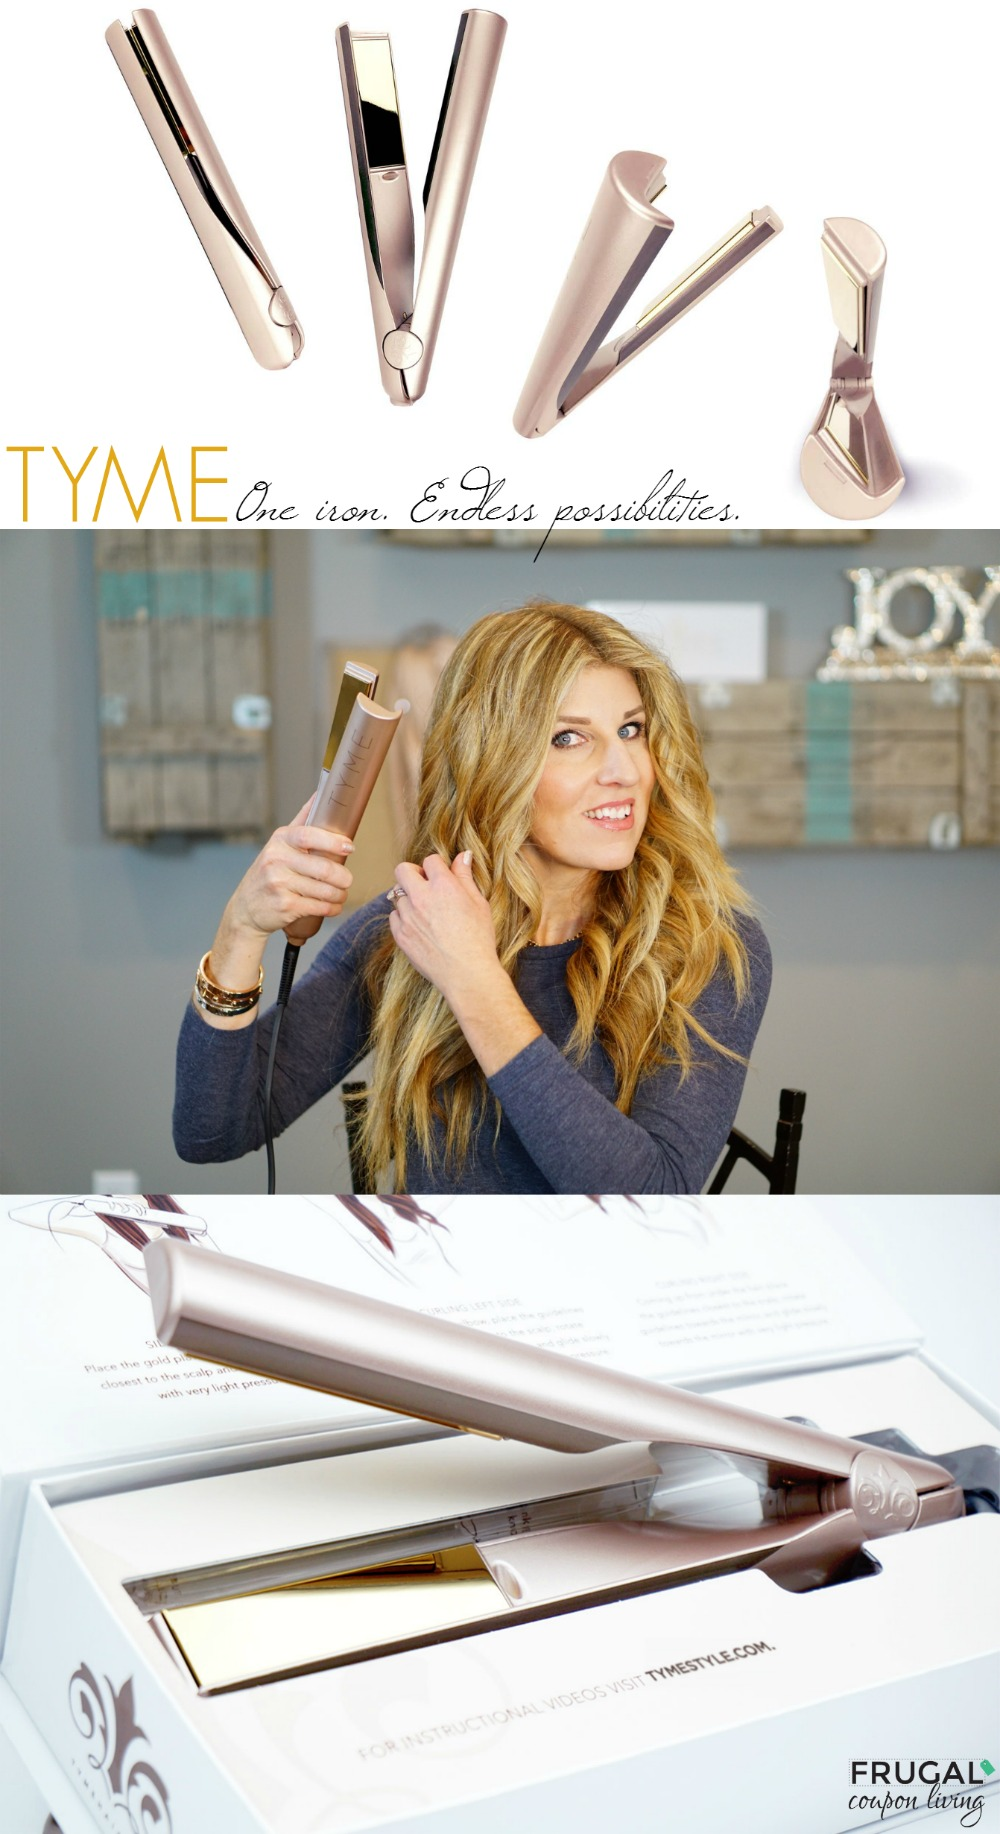 Tyme iron coupon code